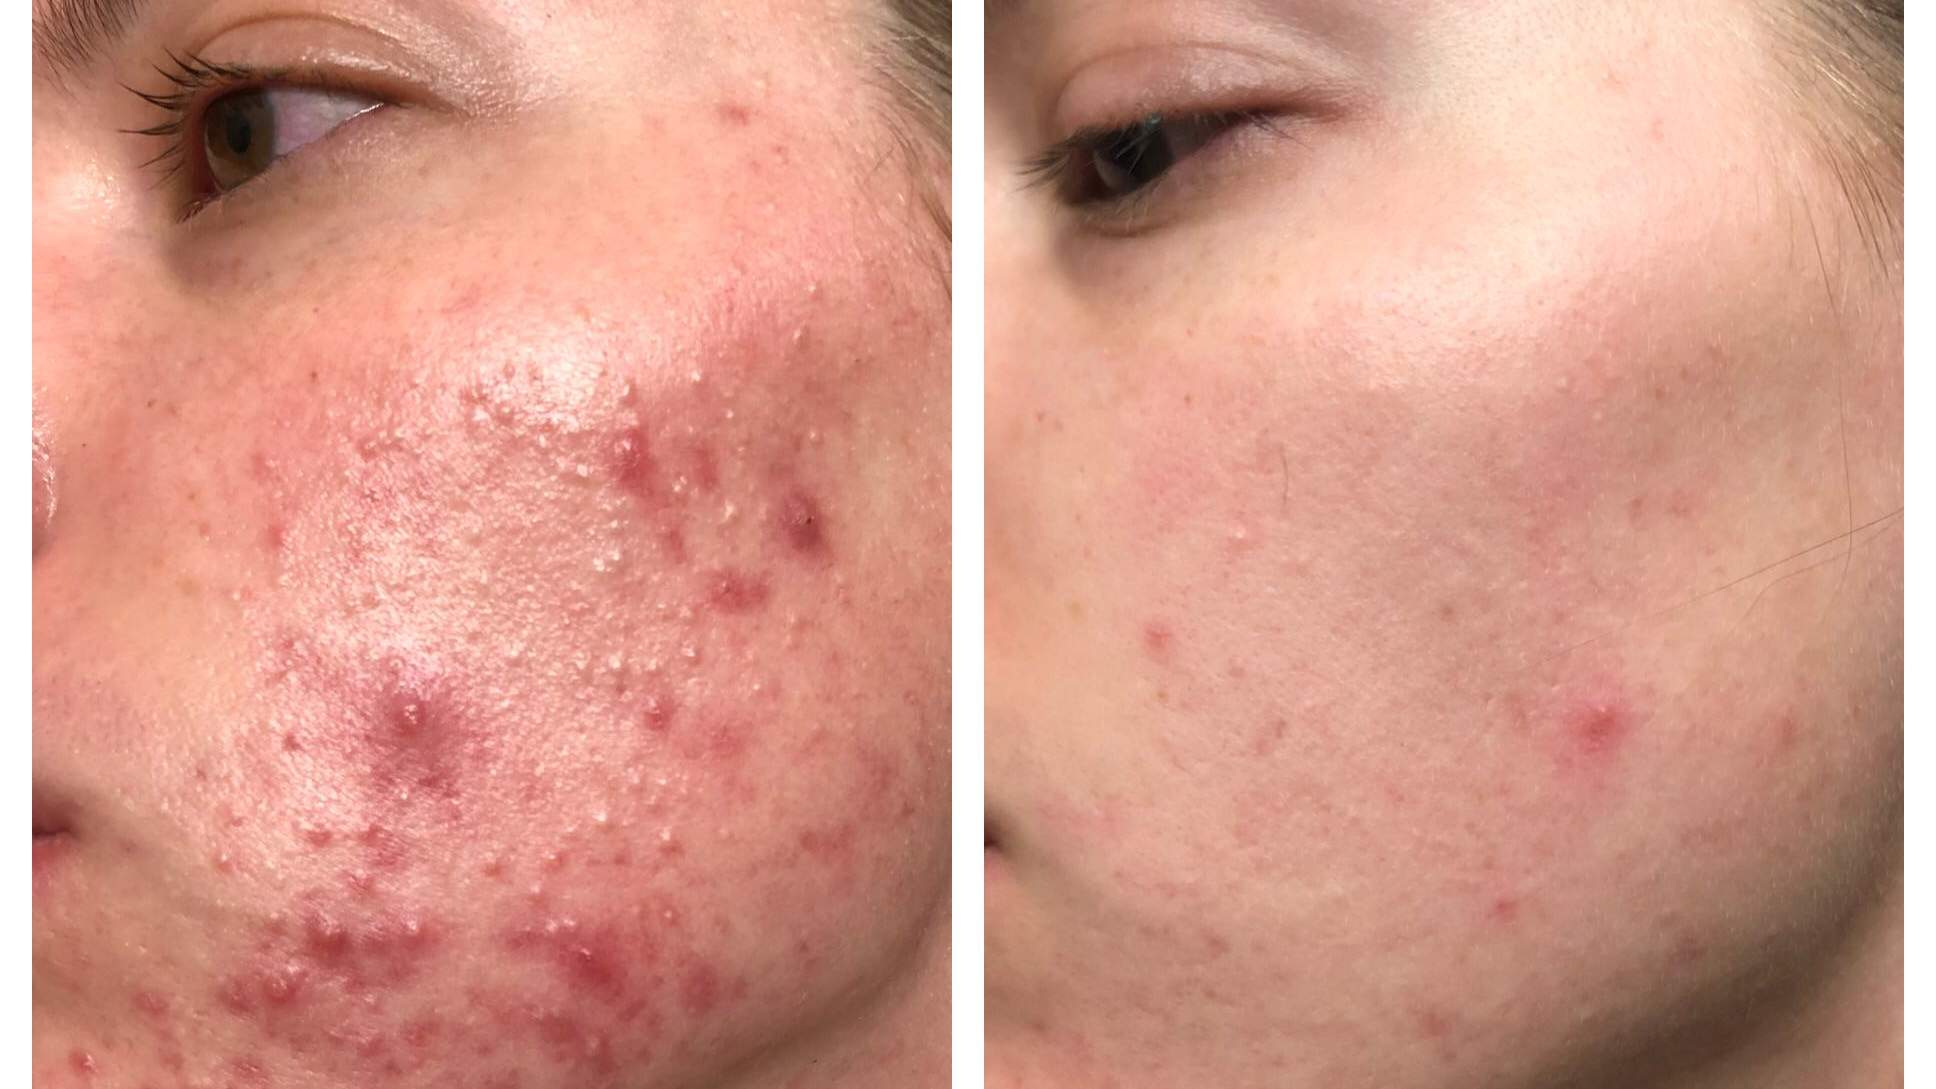 The Skincare Products That Helped Clear This Woman's Acne